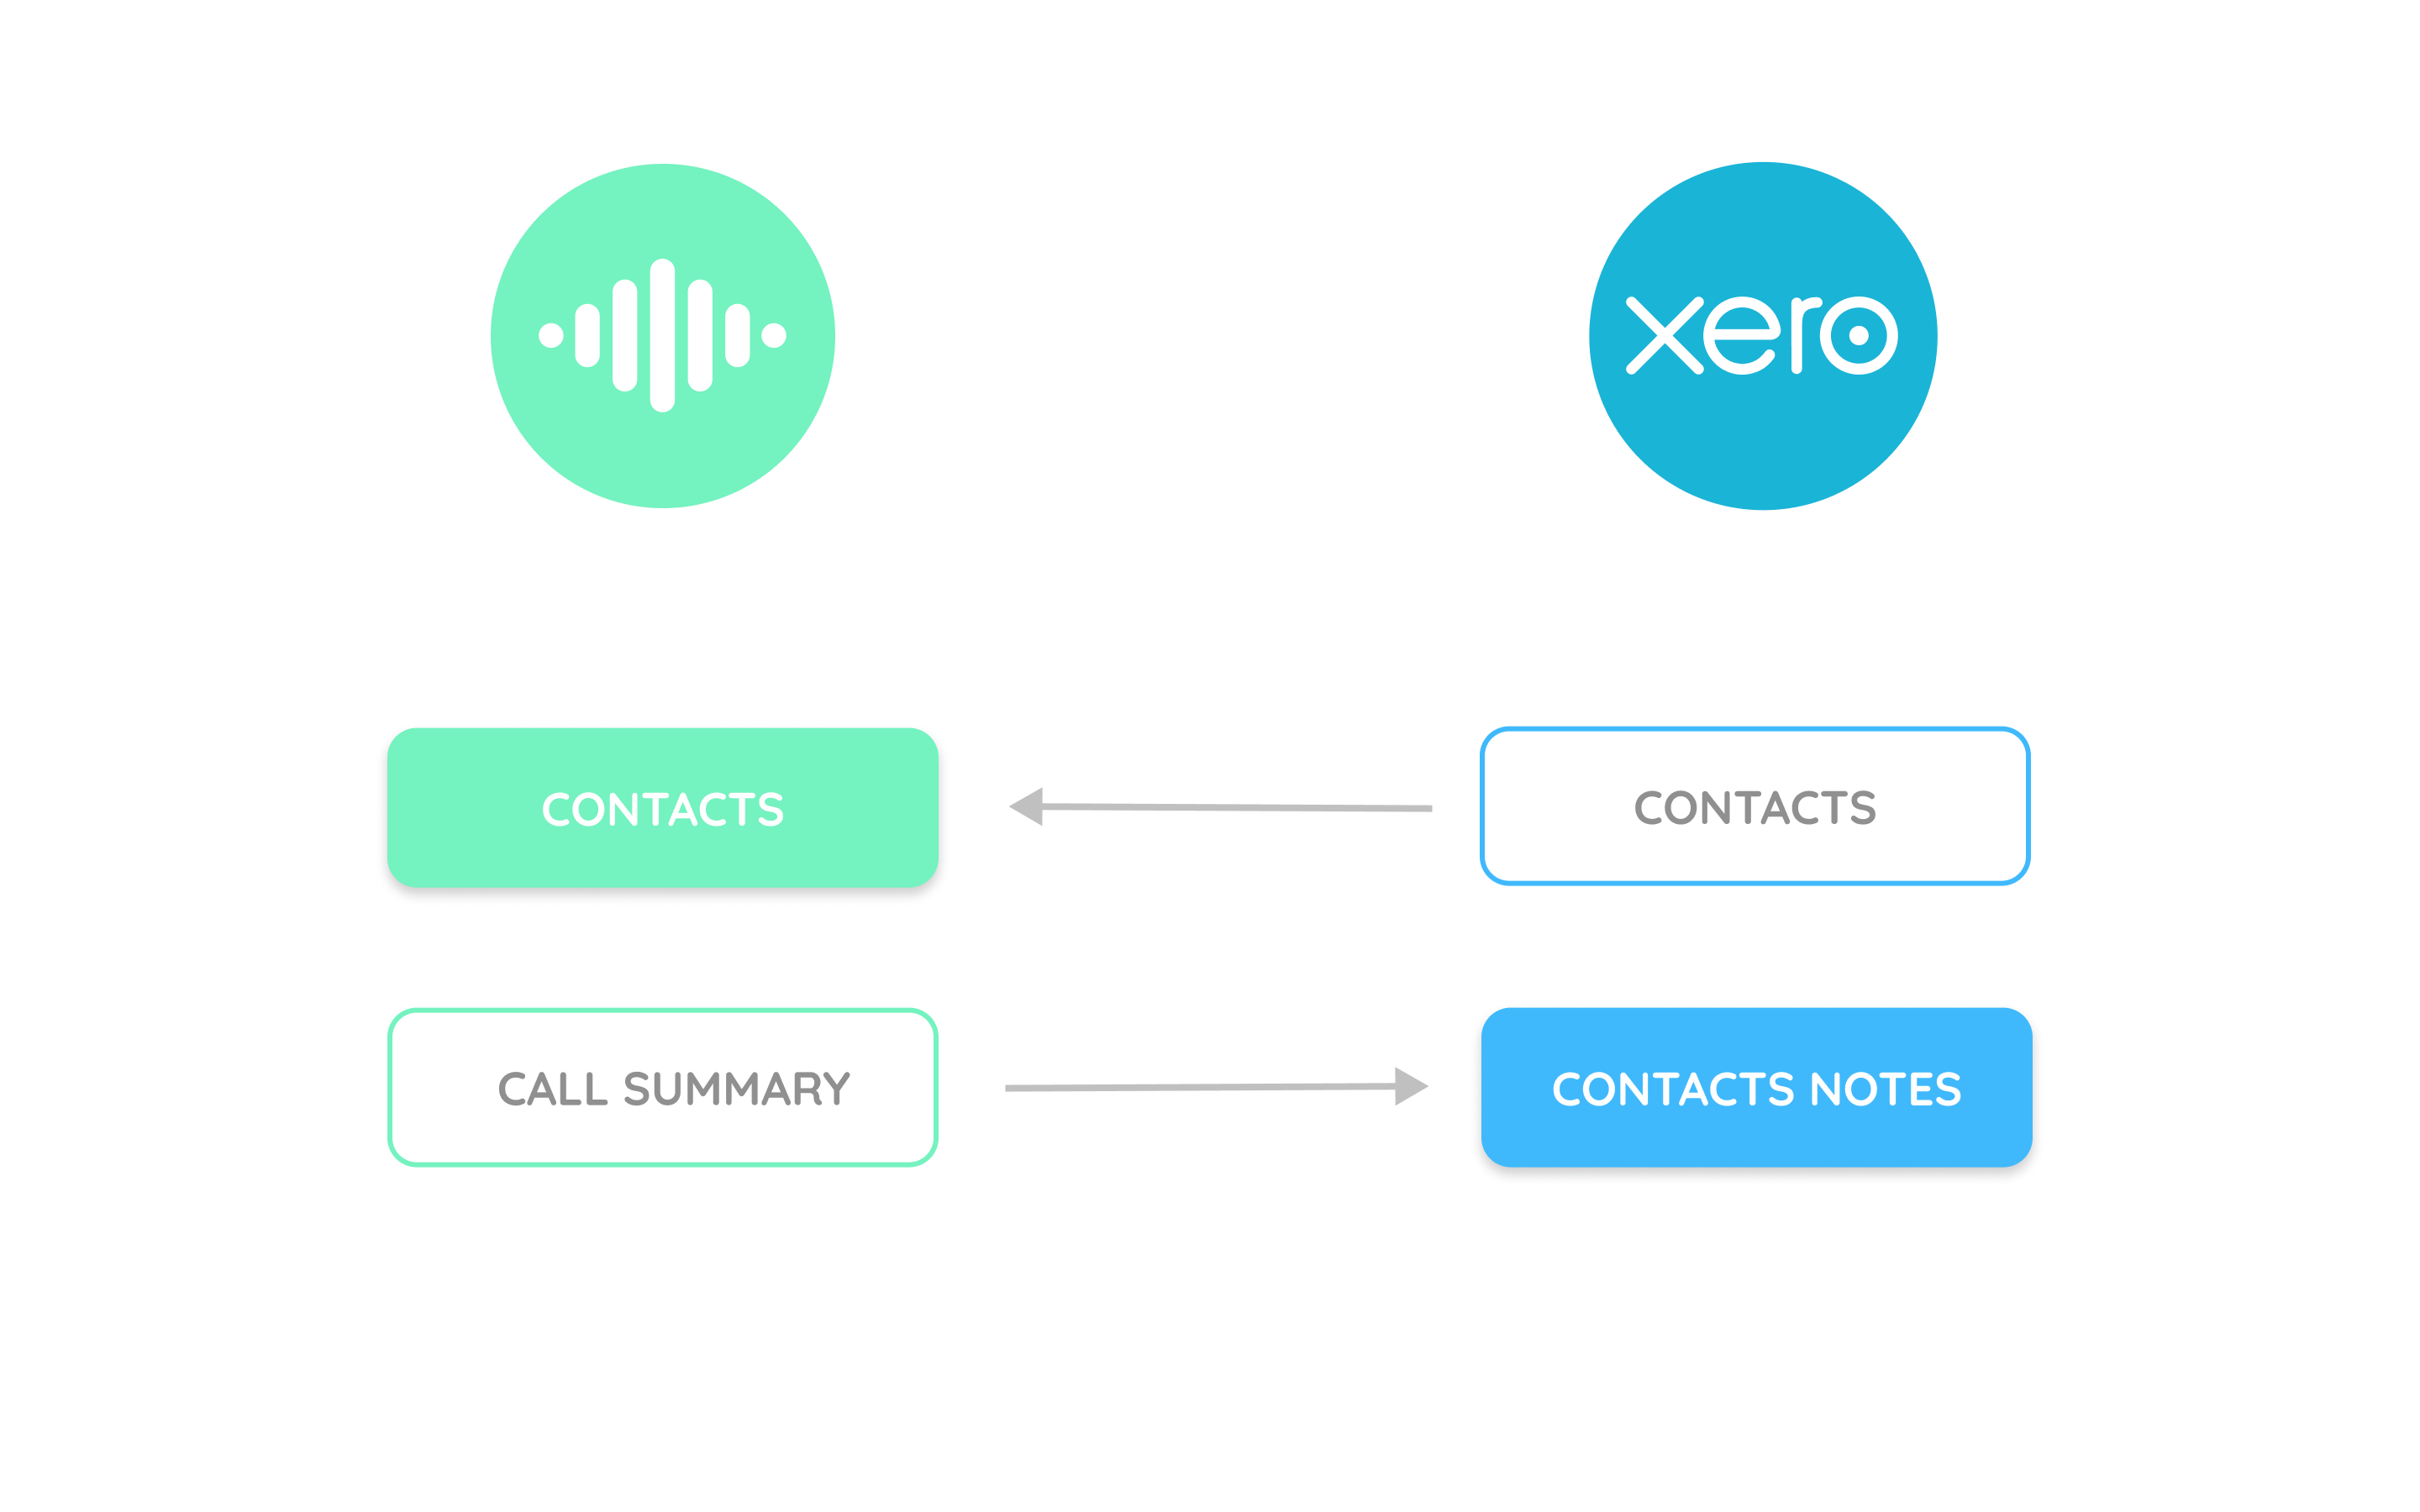 Flow chart showing how contacts are synced between Cradle and Xero